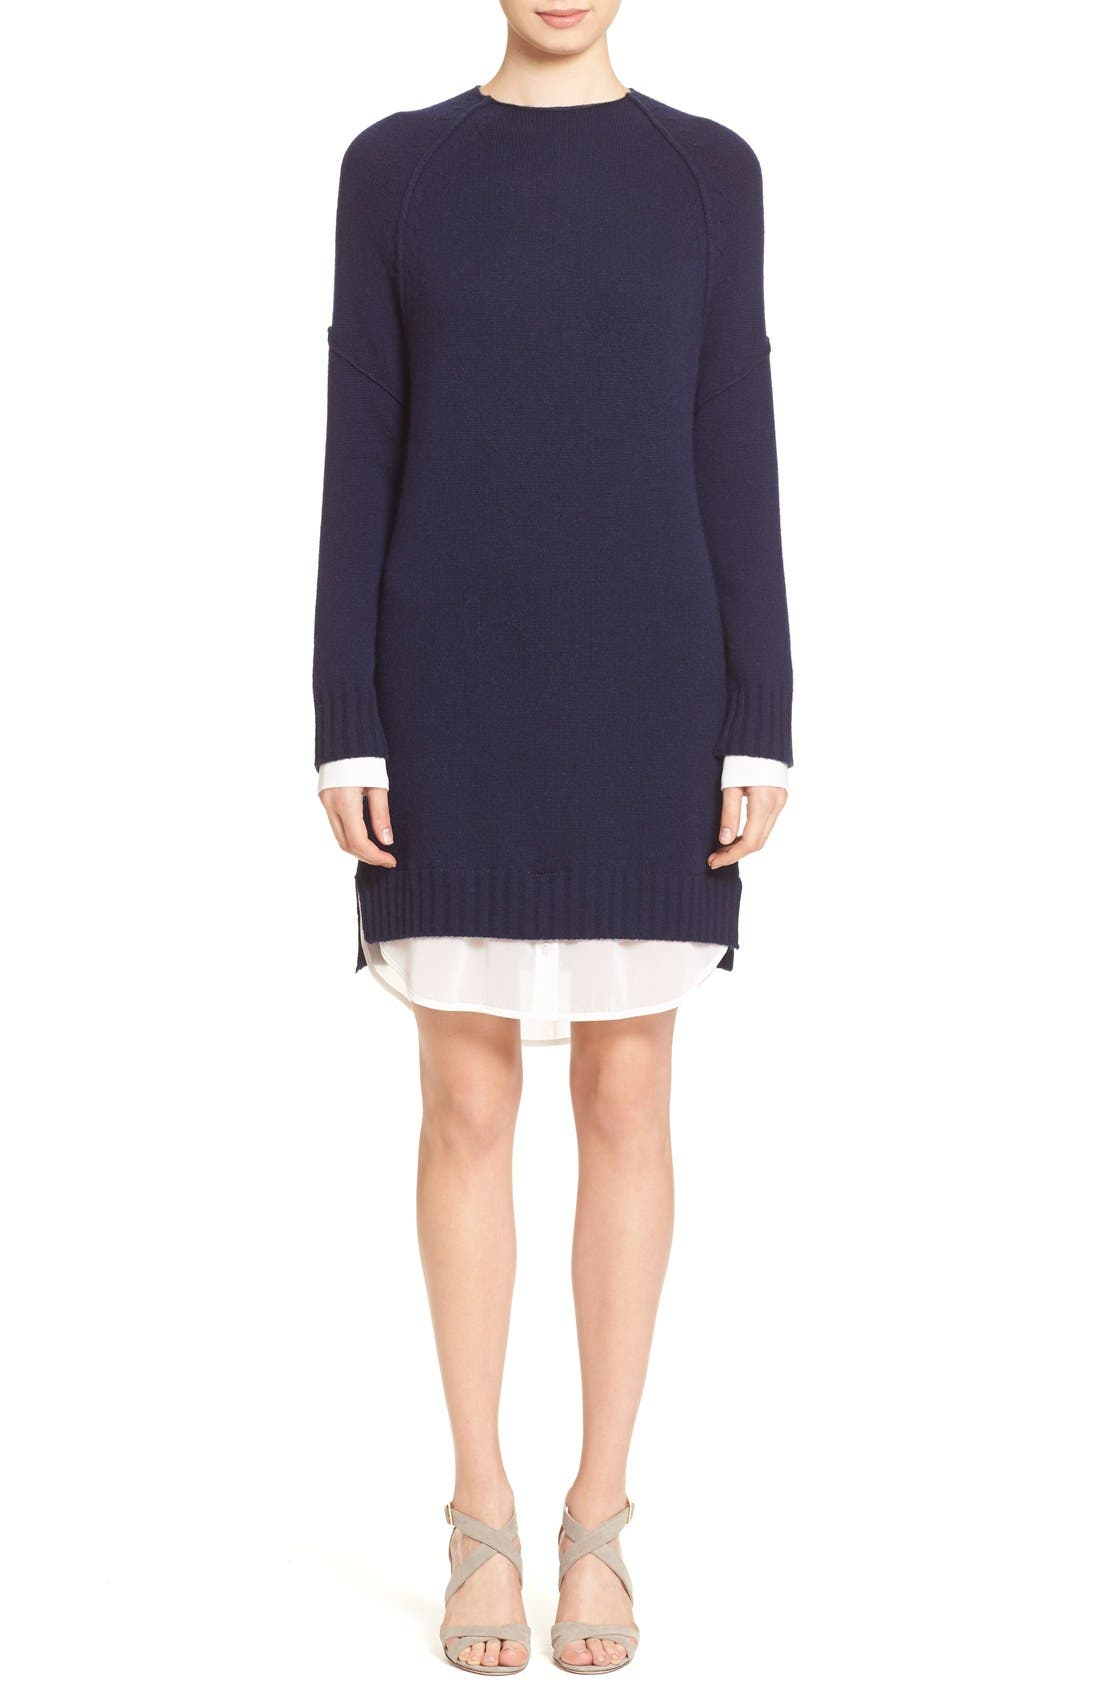 'Looker' Layered Wool & Cashmere Dress,                             Main thumbnail 1, color,                             414